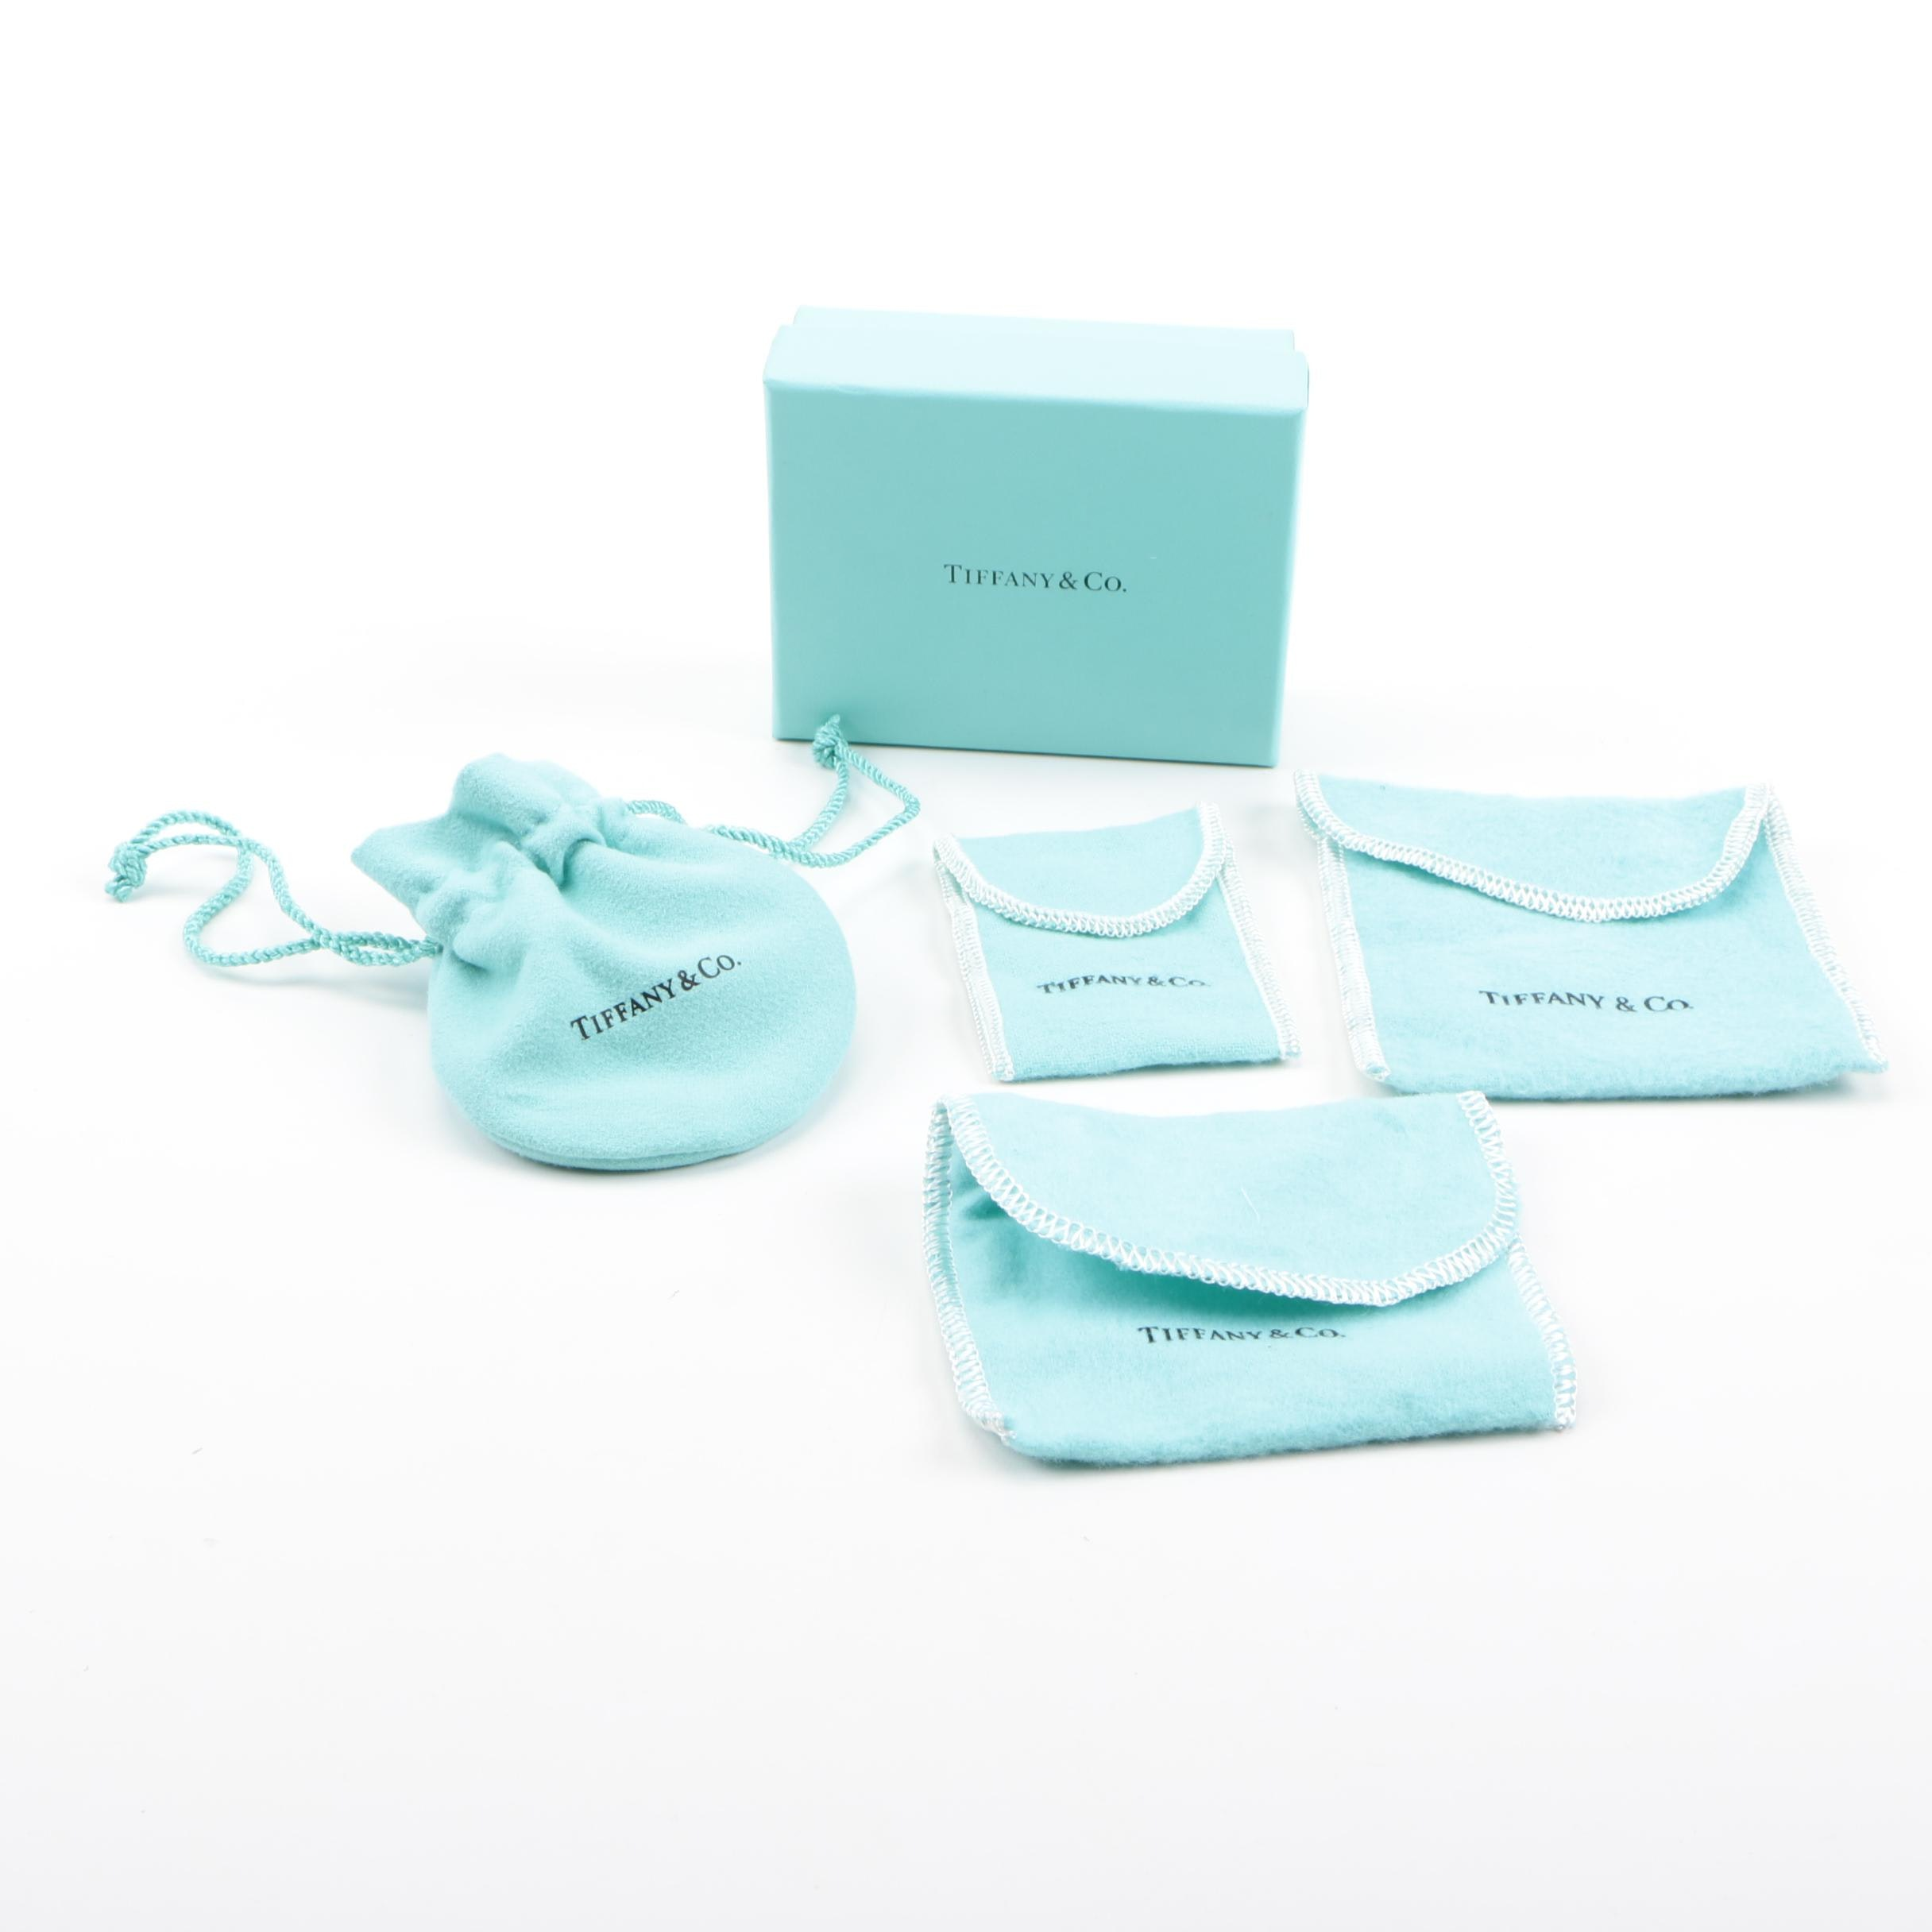 Tiffany & Co. Box and Bags